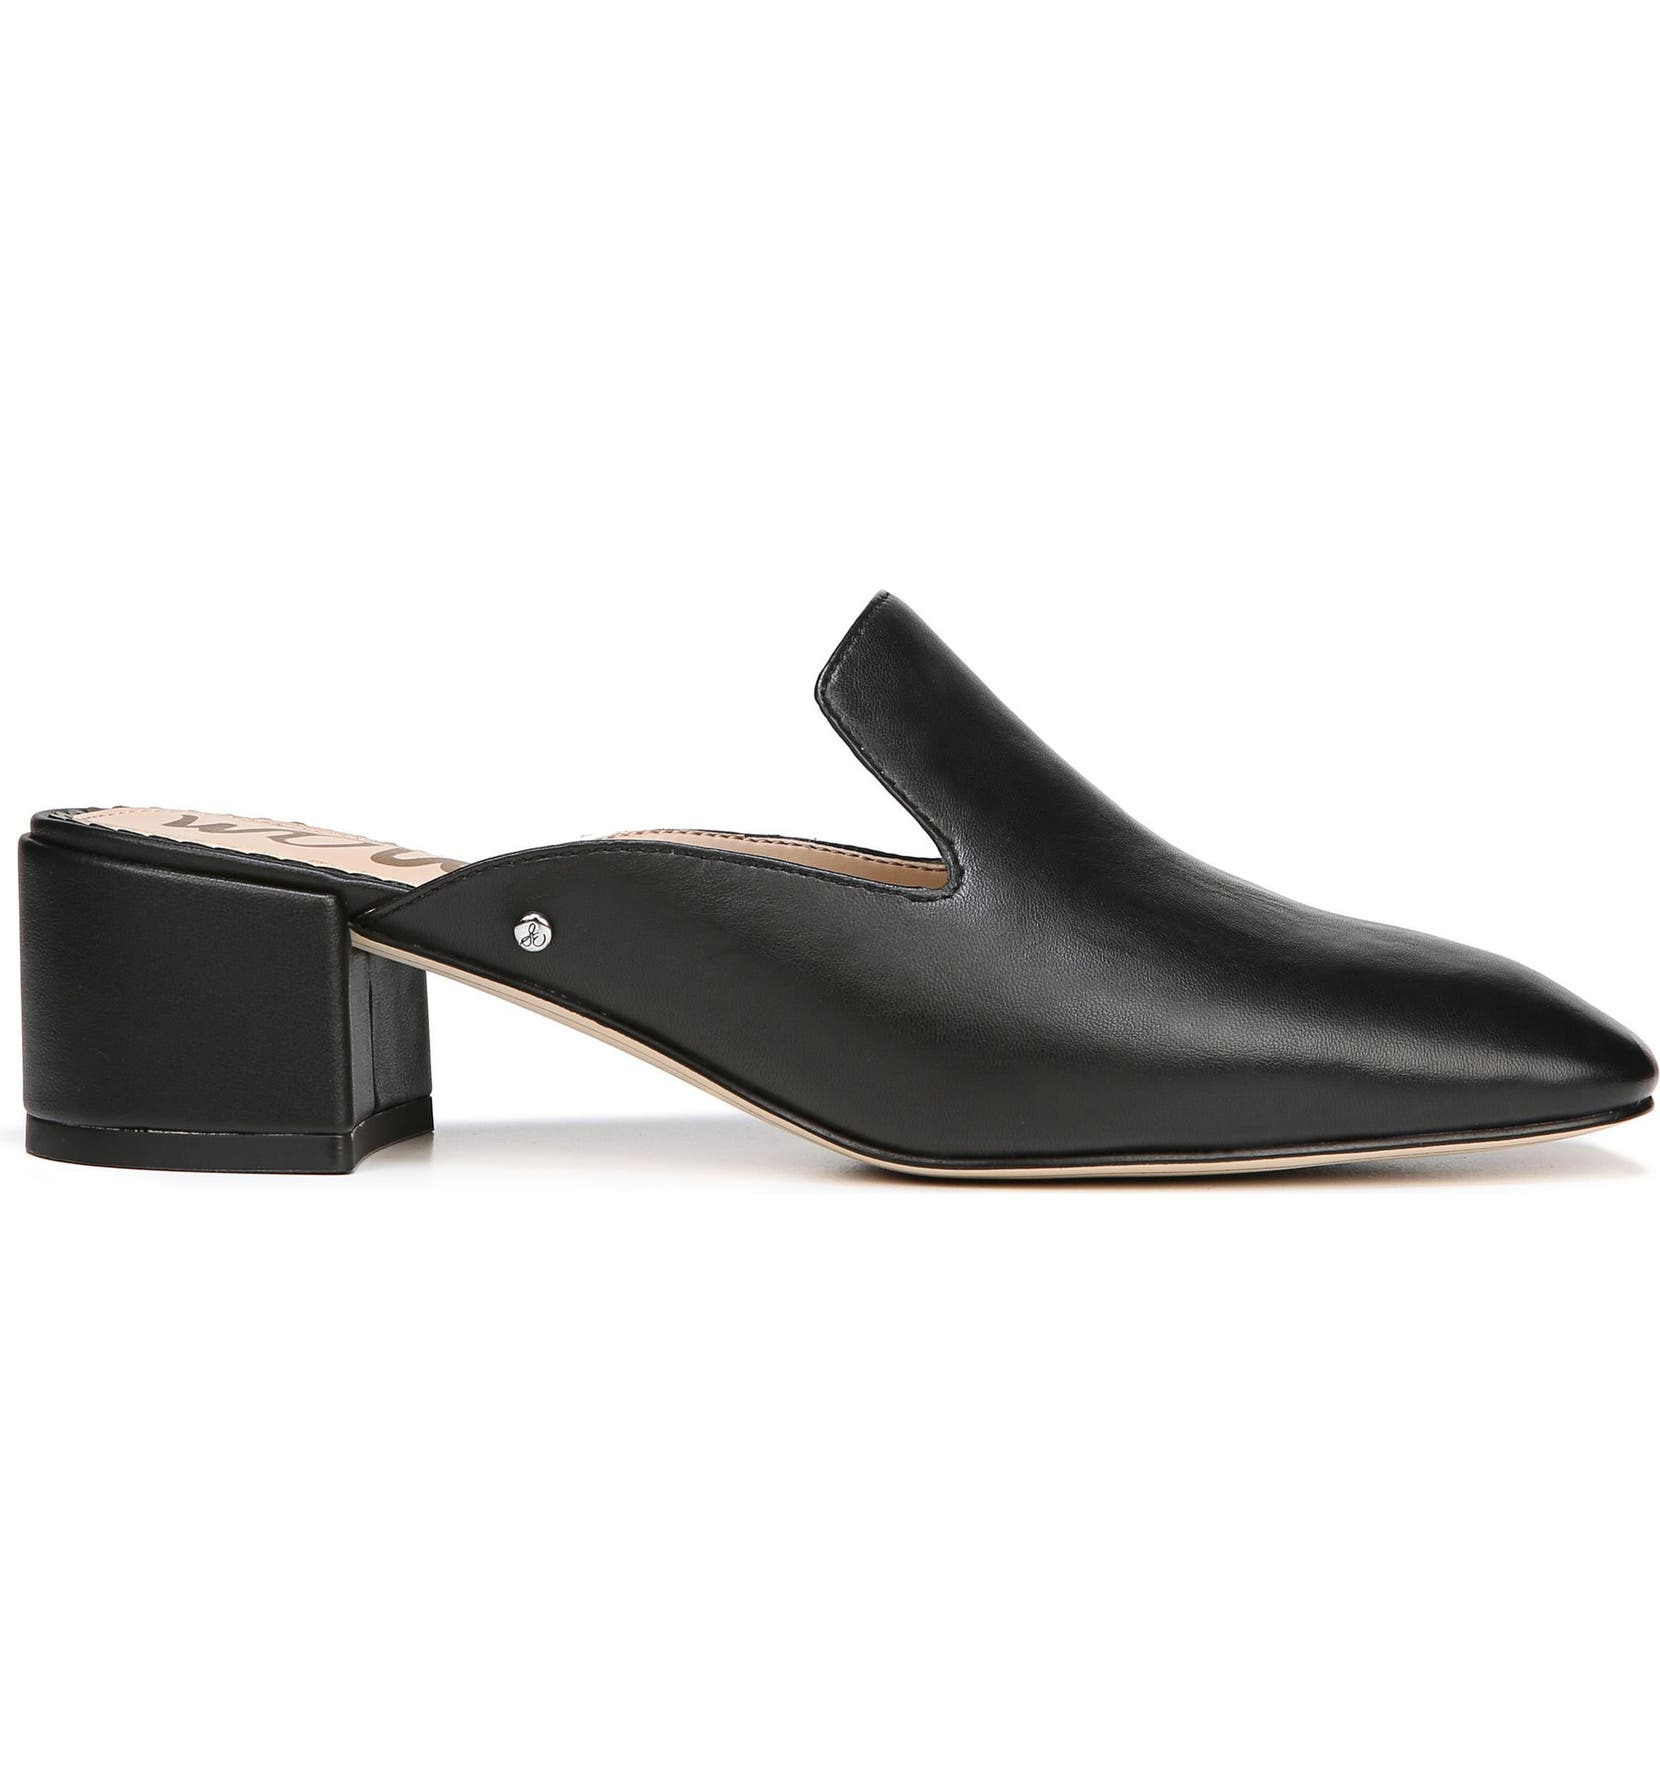 db44e9d4c47 Sam Edelman Adair Loafer Mule (Women)